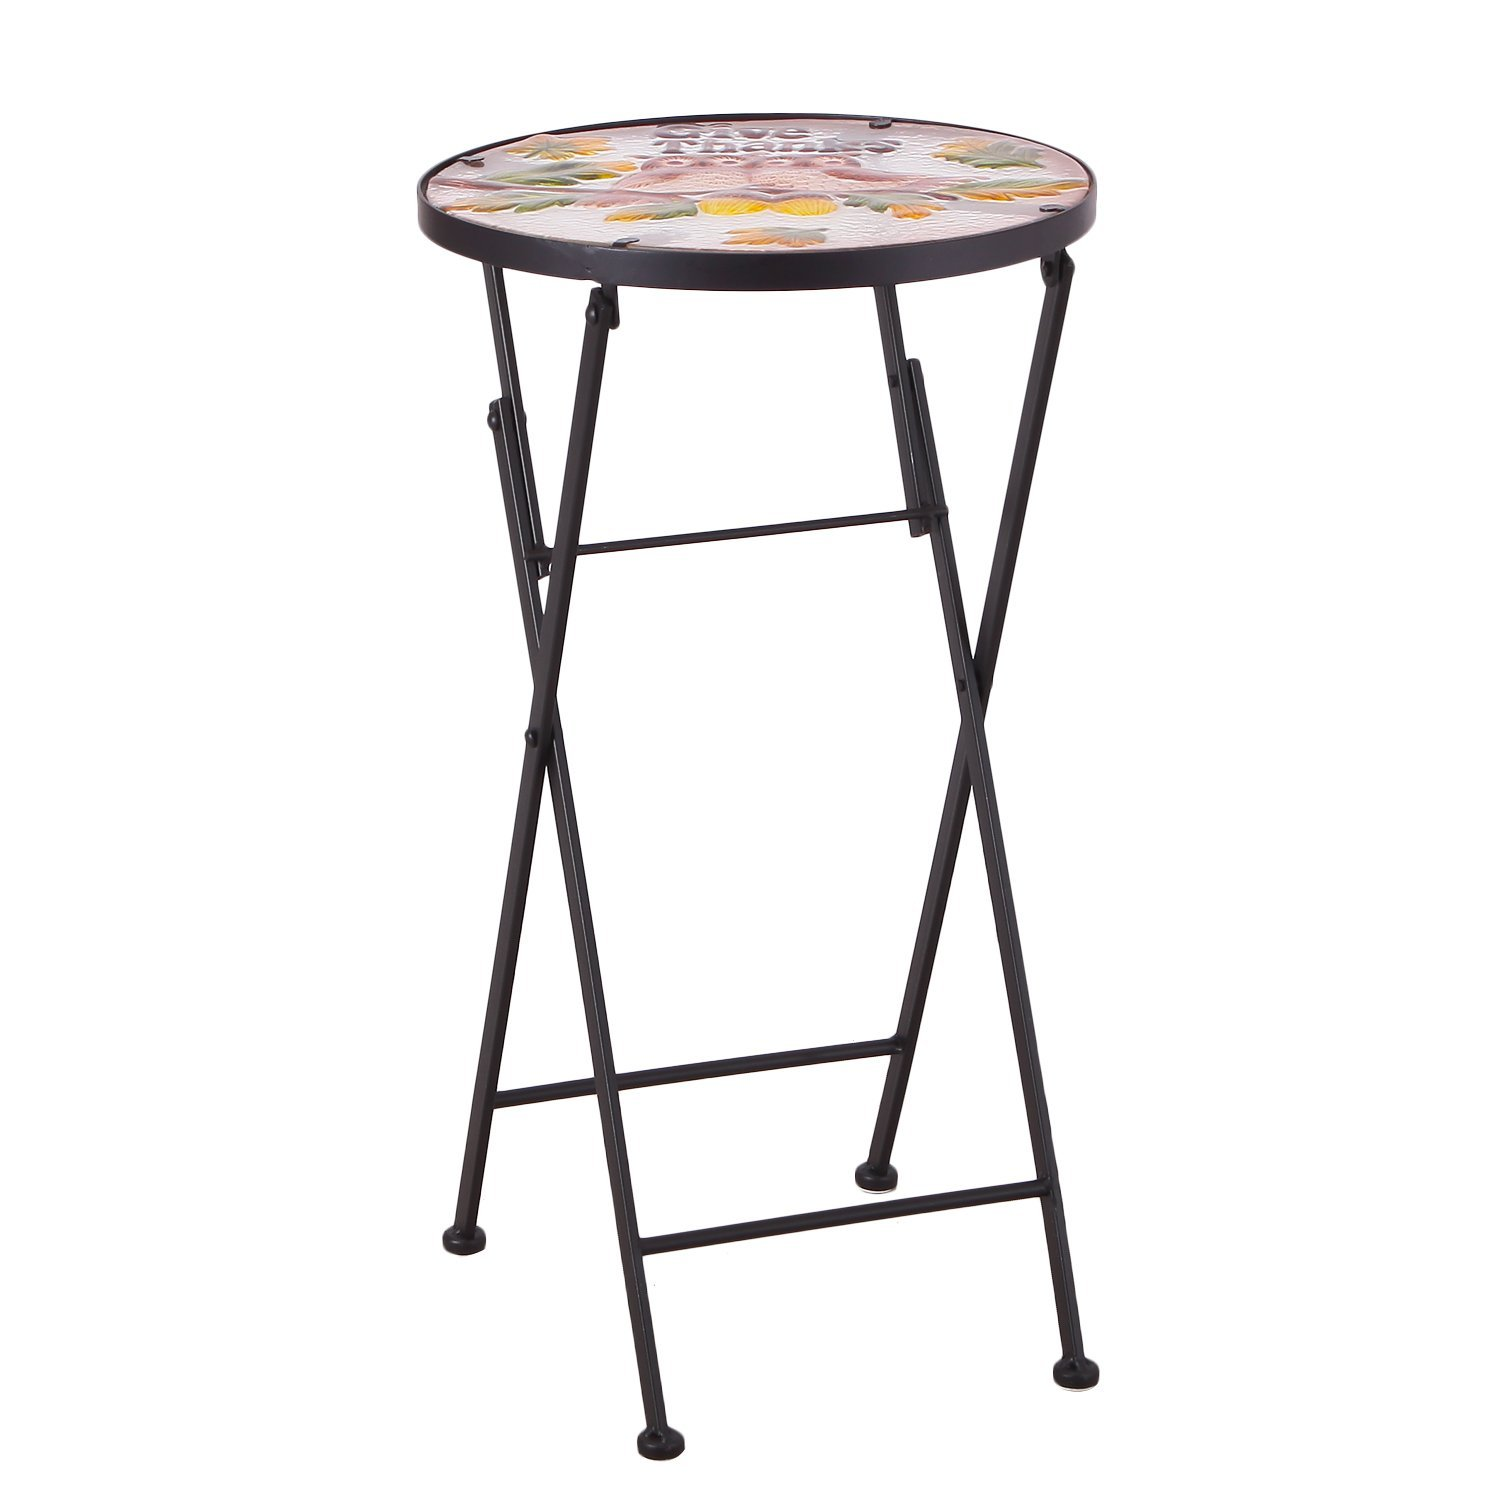 joveco hand painted style multicolor artscape accent table plant stand glass top round side foldable owl garden outdoor microwave target farmhouse coffee metal legs concealment